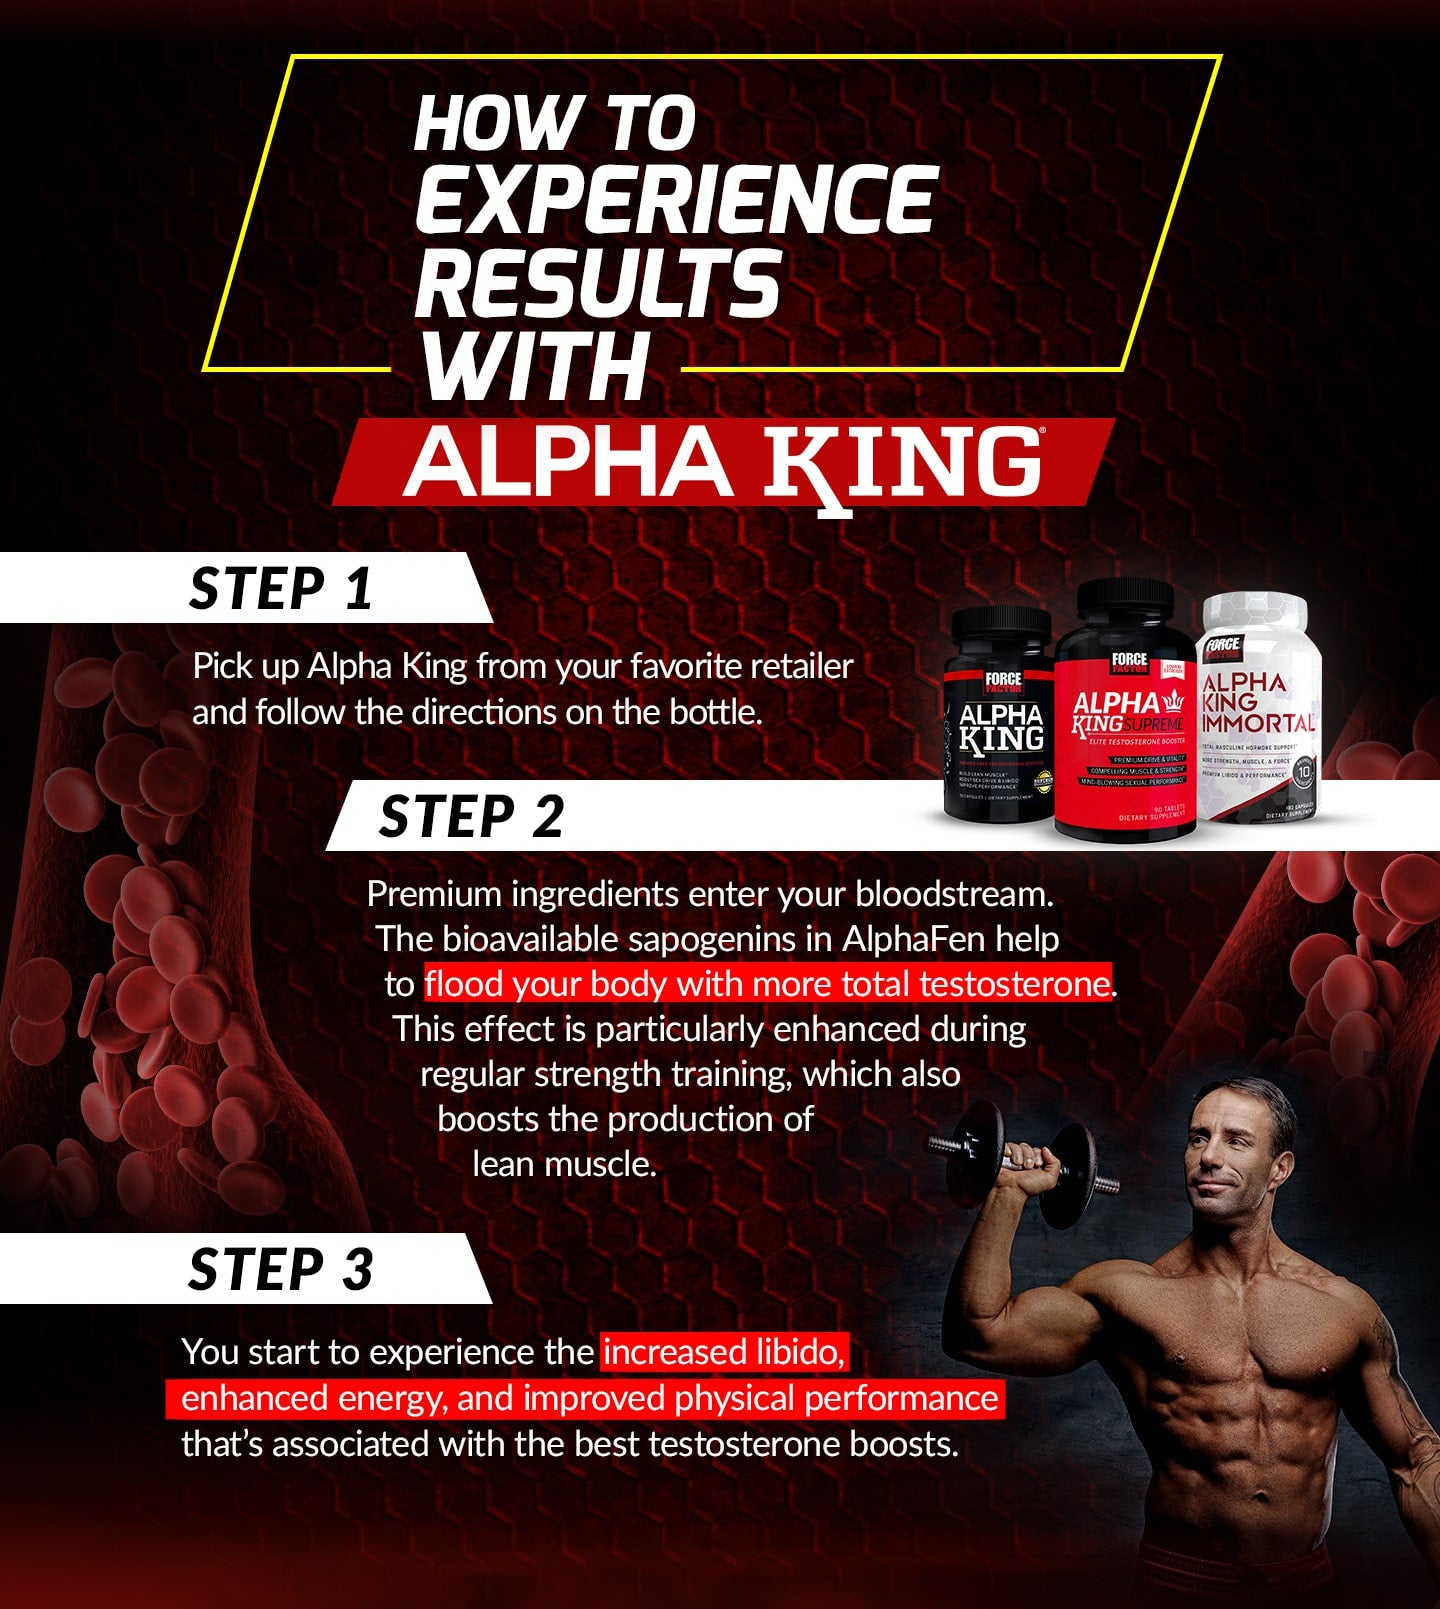 HOW TO EXPERIENCE RESULTS WITH ALPHA KING. STEP 1 - Pick up Alpha King from your favorite retailer and follow the directions on the bottle. STEP 2 - Premium ingredients enter your bloodstream. The bioavailable sapogenins in AlphaFen help to flood your body with more total testosterone. This effect is particularly enhanced during regular strength training, which also boosts the production of lean muscle. STEP 3 - You start to experience the increased libido, enhanced energy, and improved physical performance that's associated with the best testosterone boosts.